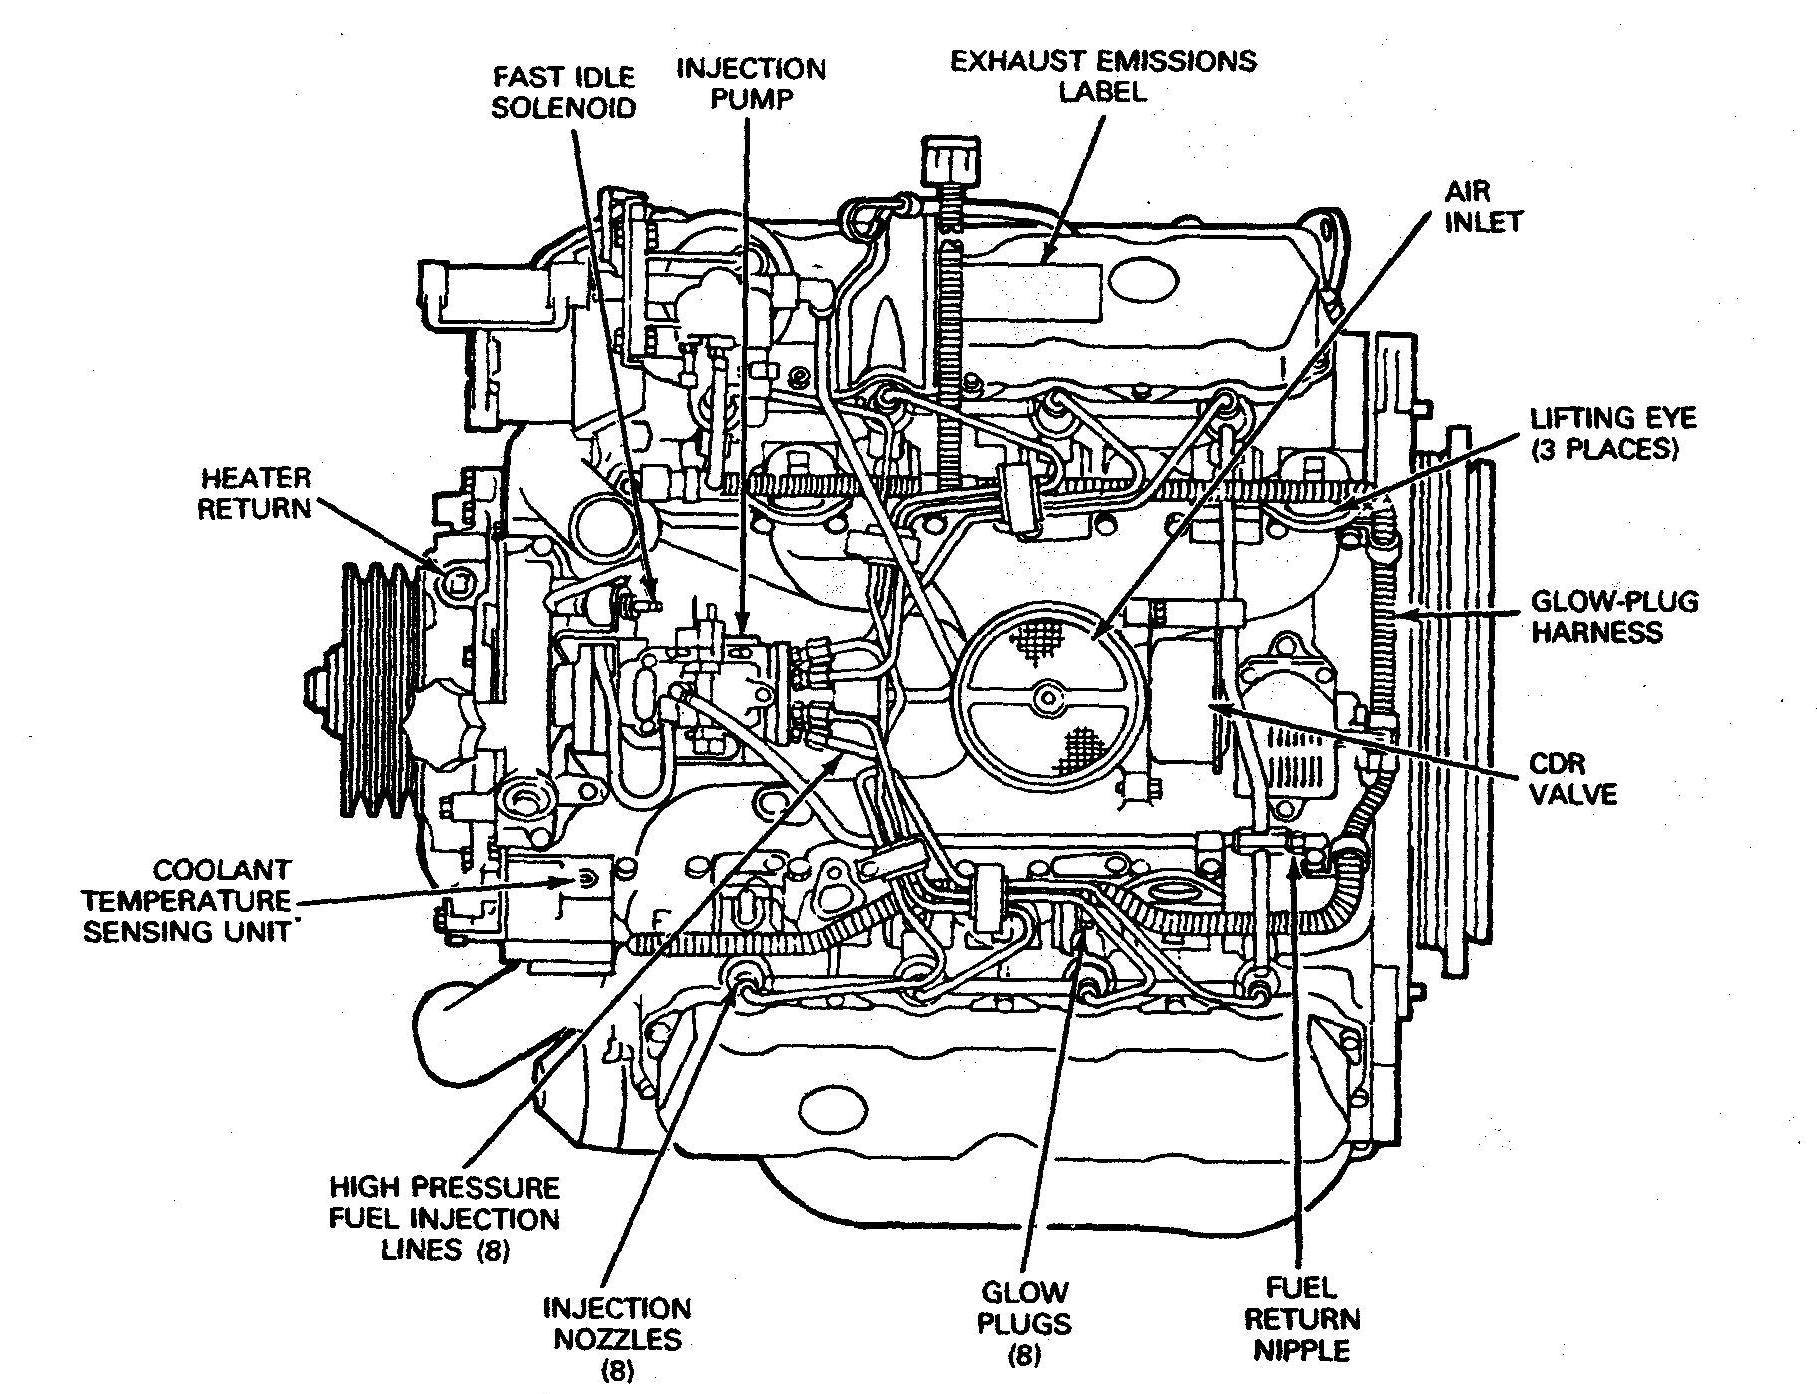 2001 Mercury Cougar 2 5 Engine Diagram Schematics Data Wiring Mountaineer And Jet Drive E46 Mazda B2500